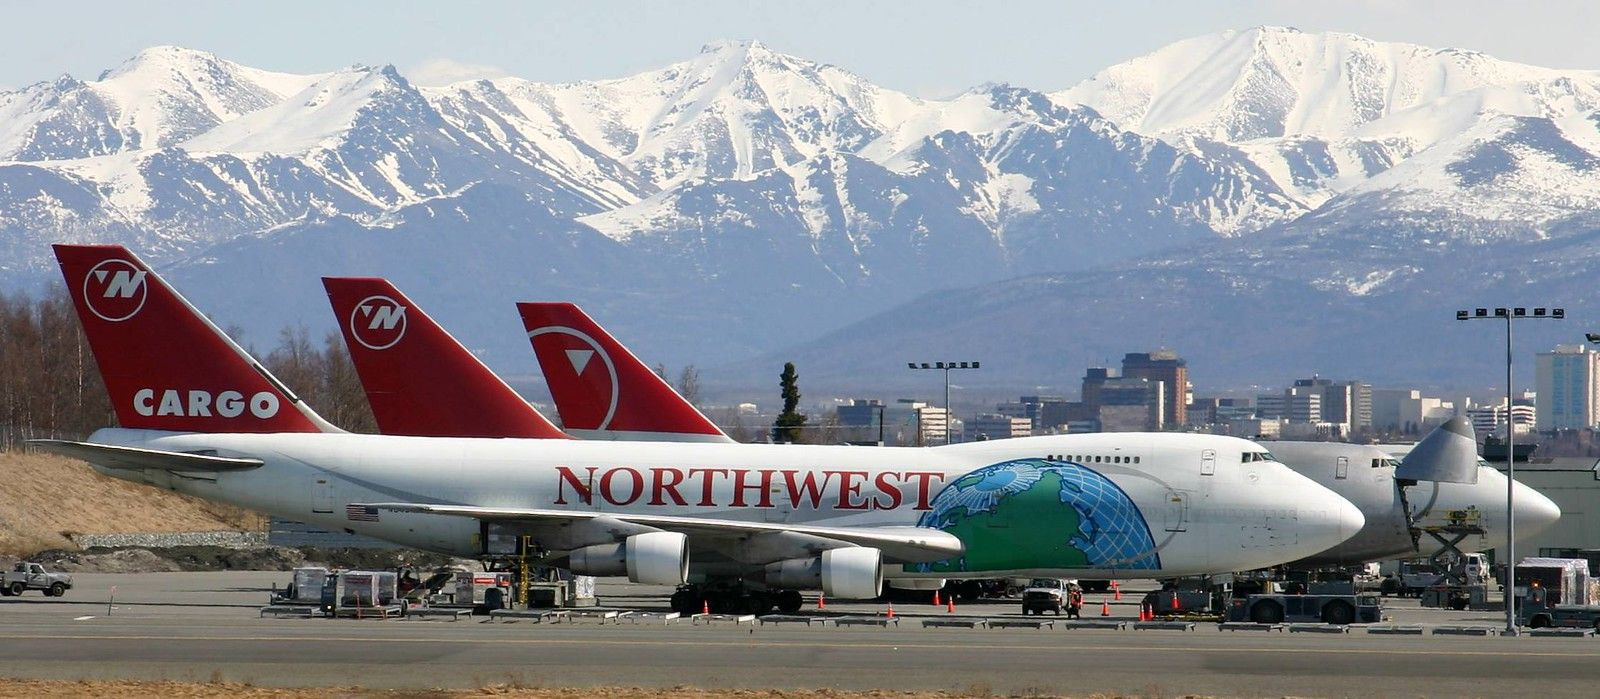 Northwest 747 Freighters lined up with the Chugach